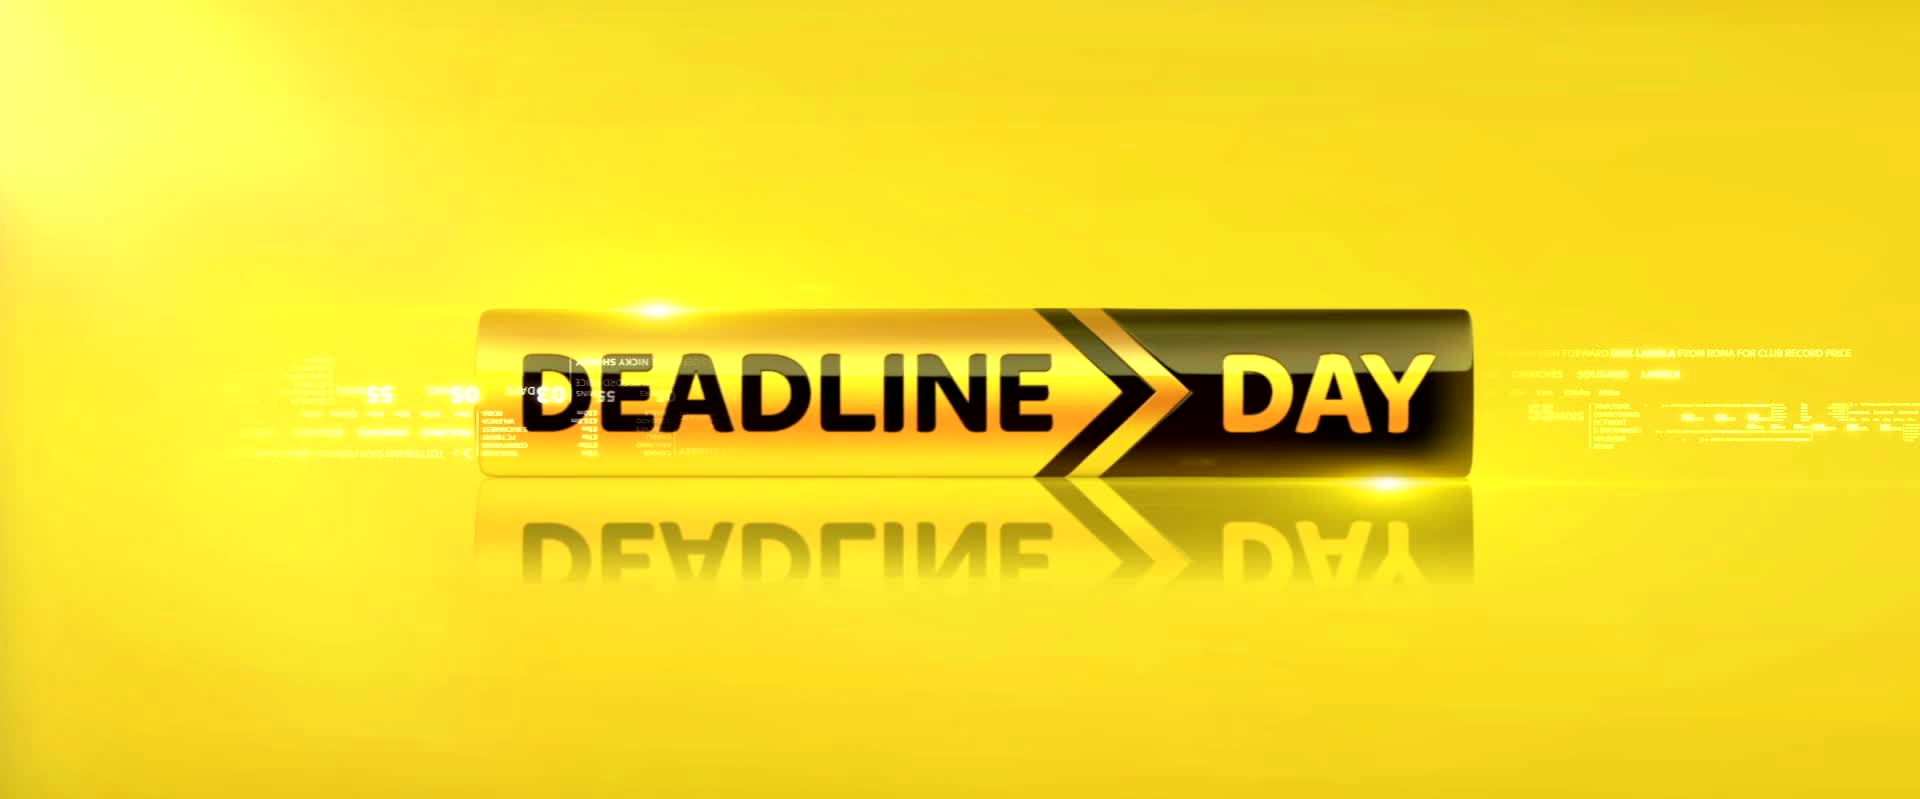 deadline-day-header